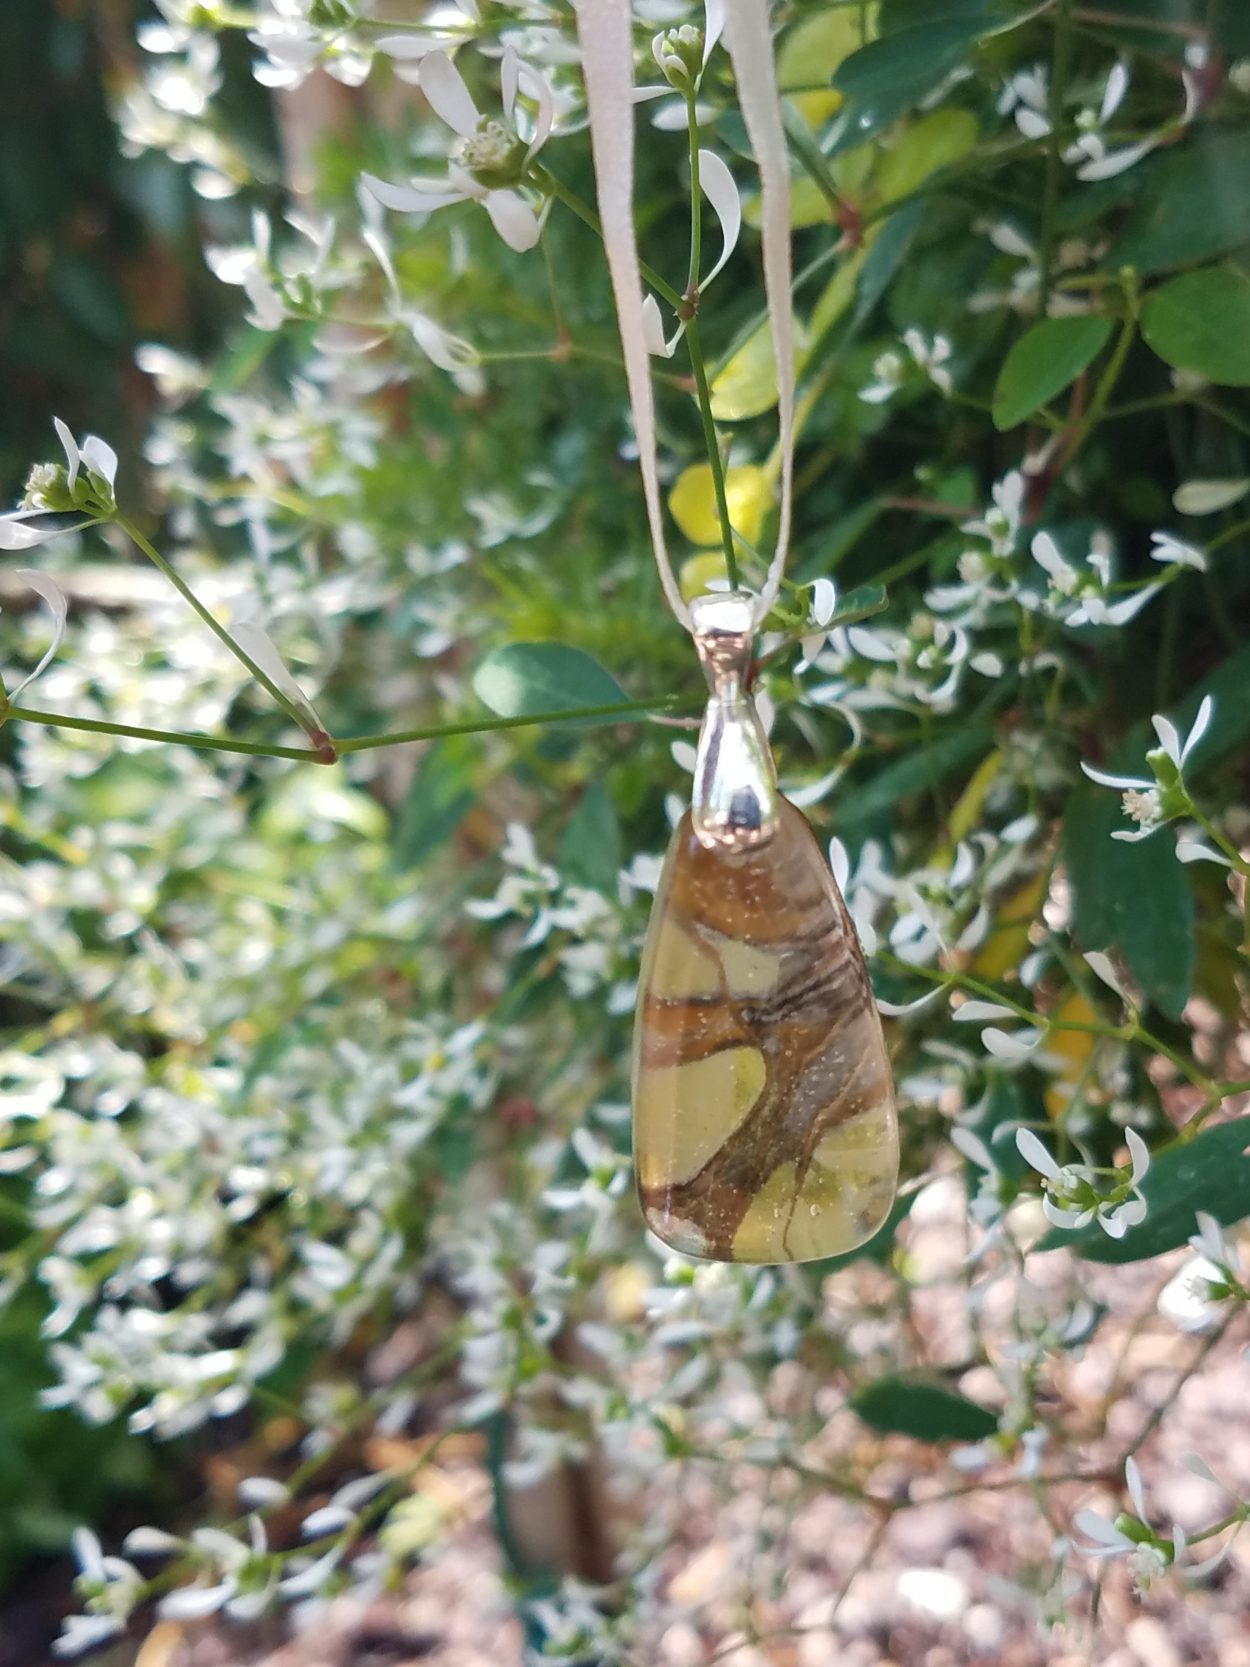 Paper Kite Butterfly wing pendant held against small white flowers